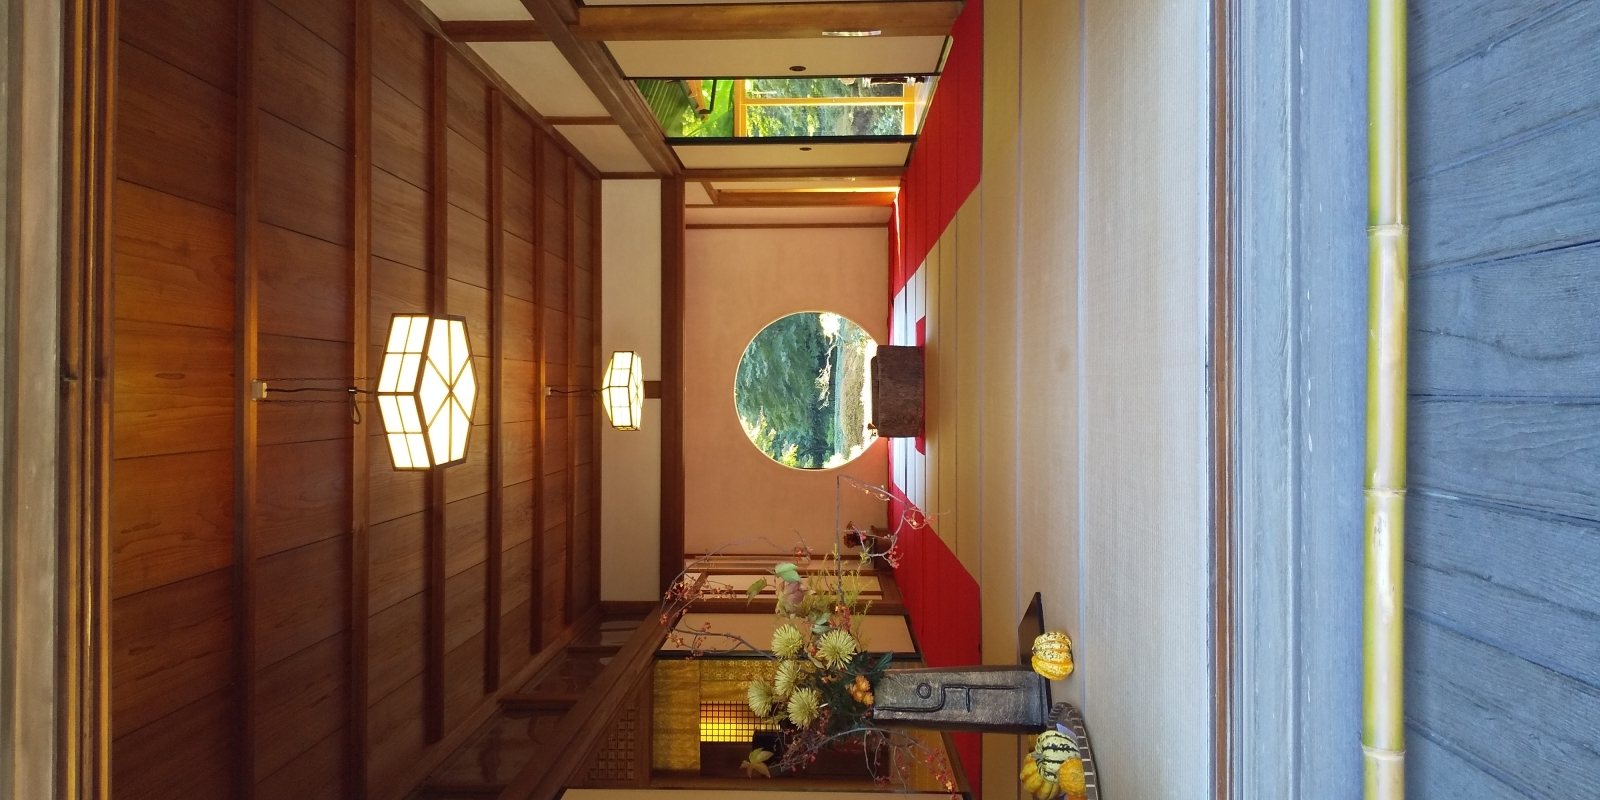 One day - Private Tour based on your requests in Kita kamakura & Komachi shopping street